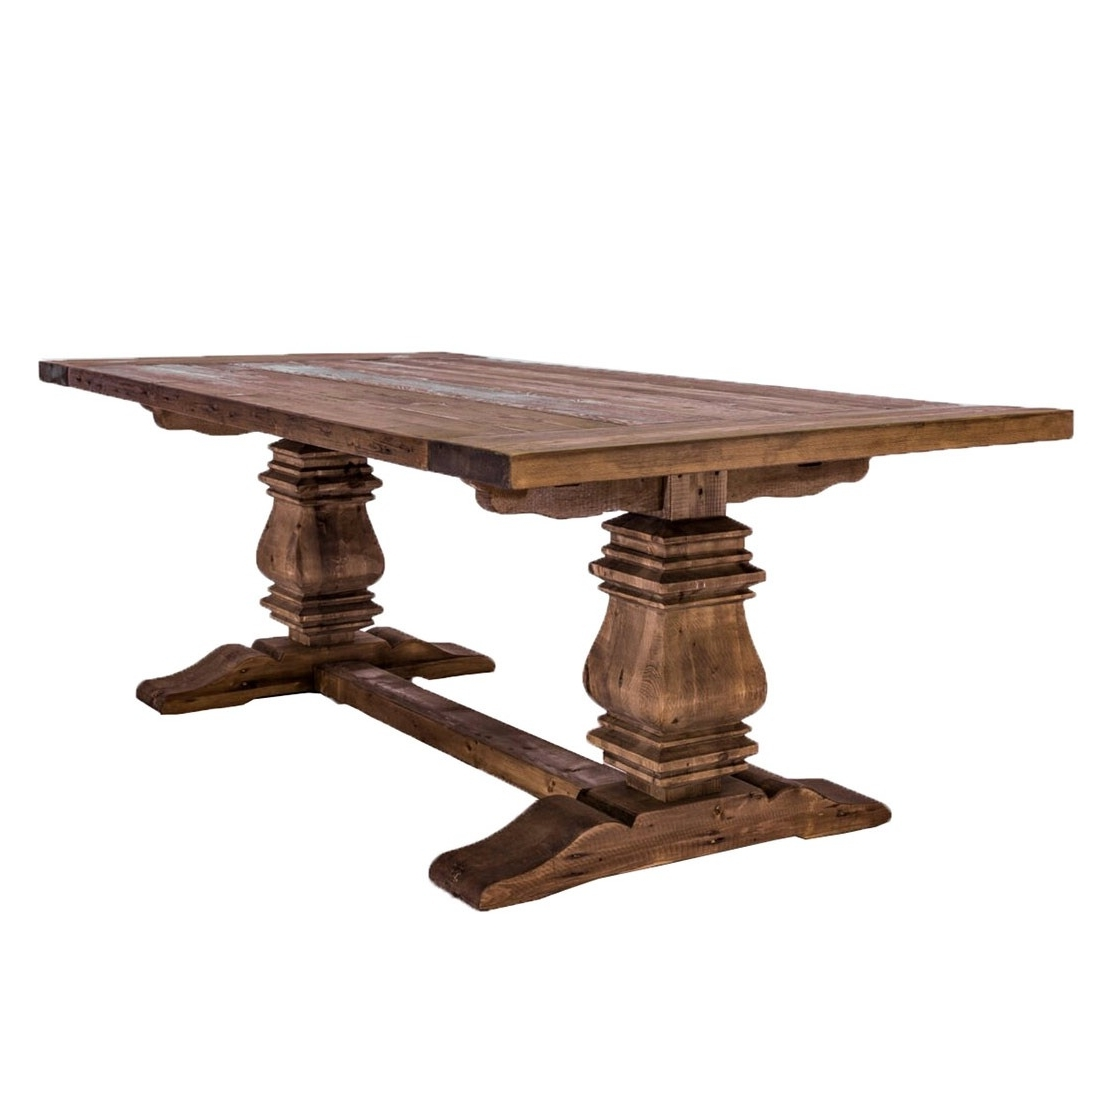 Amos Extension Dining Tables For Most Up To Date Kingswood Harvest Dining Table » Glamour & Woods (Gallery 16 of 25)